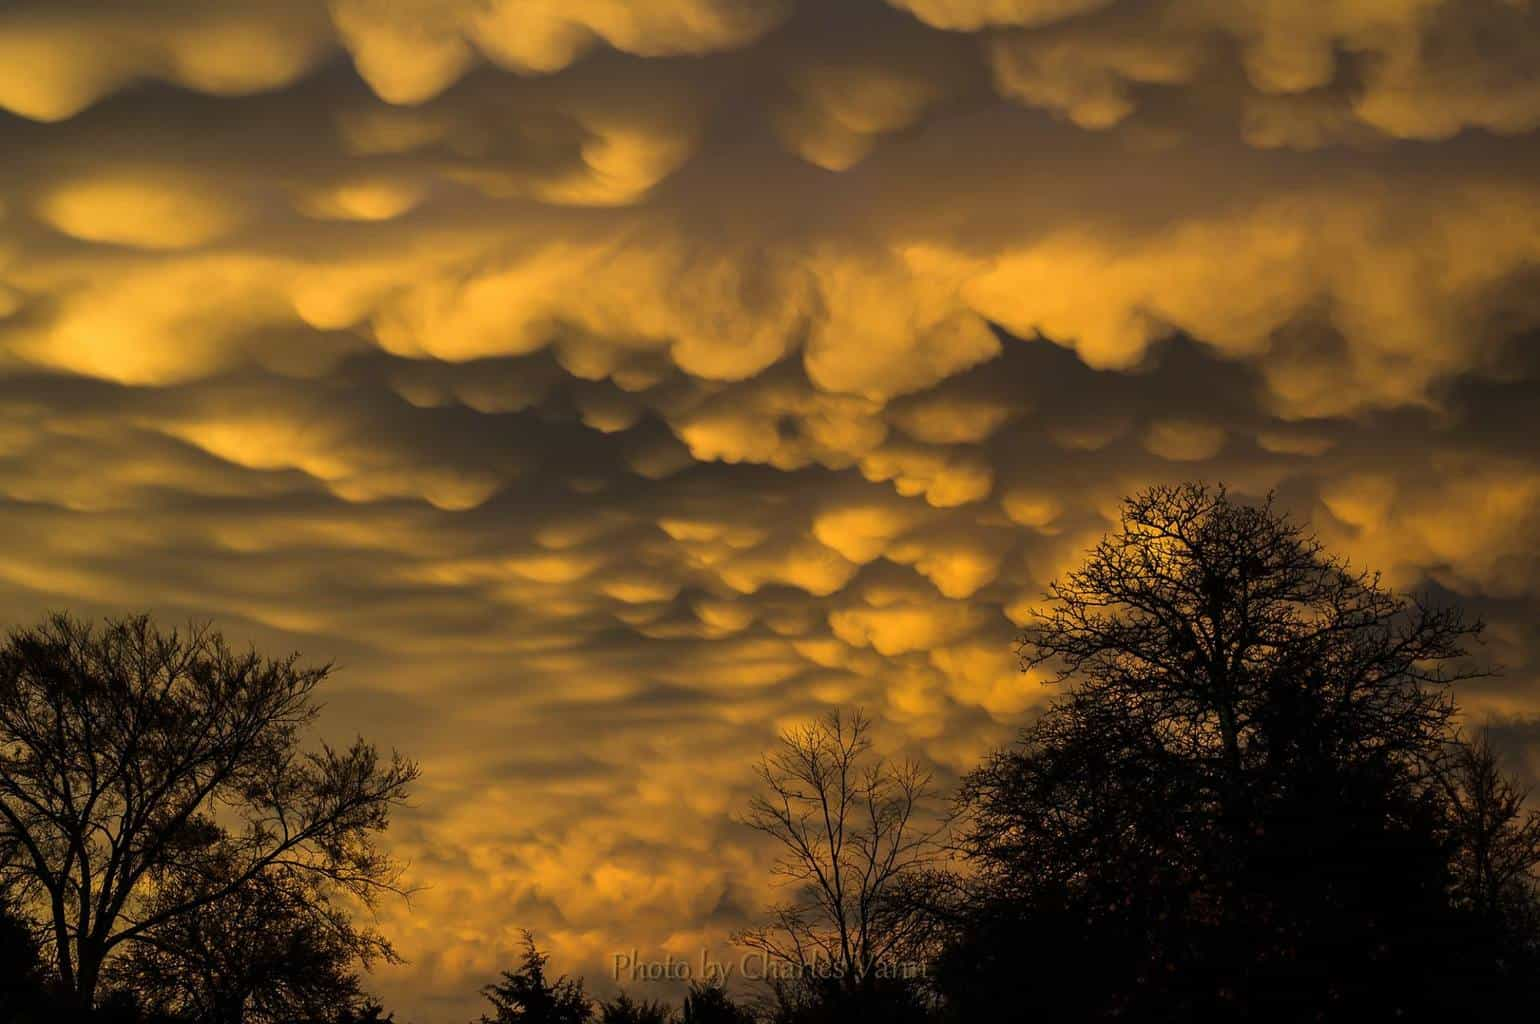 Here in Eastern Oklahoma, we had storms and rain all day... Then the sky opened up to highlight the beautiful Mammatus Clouds at sunset.